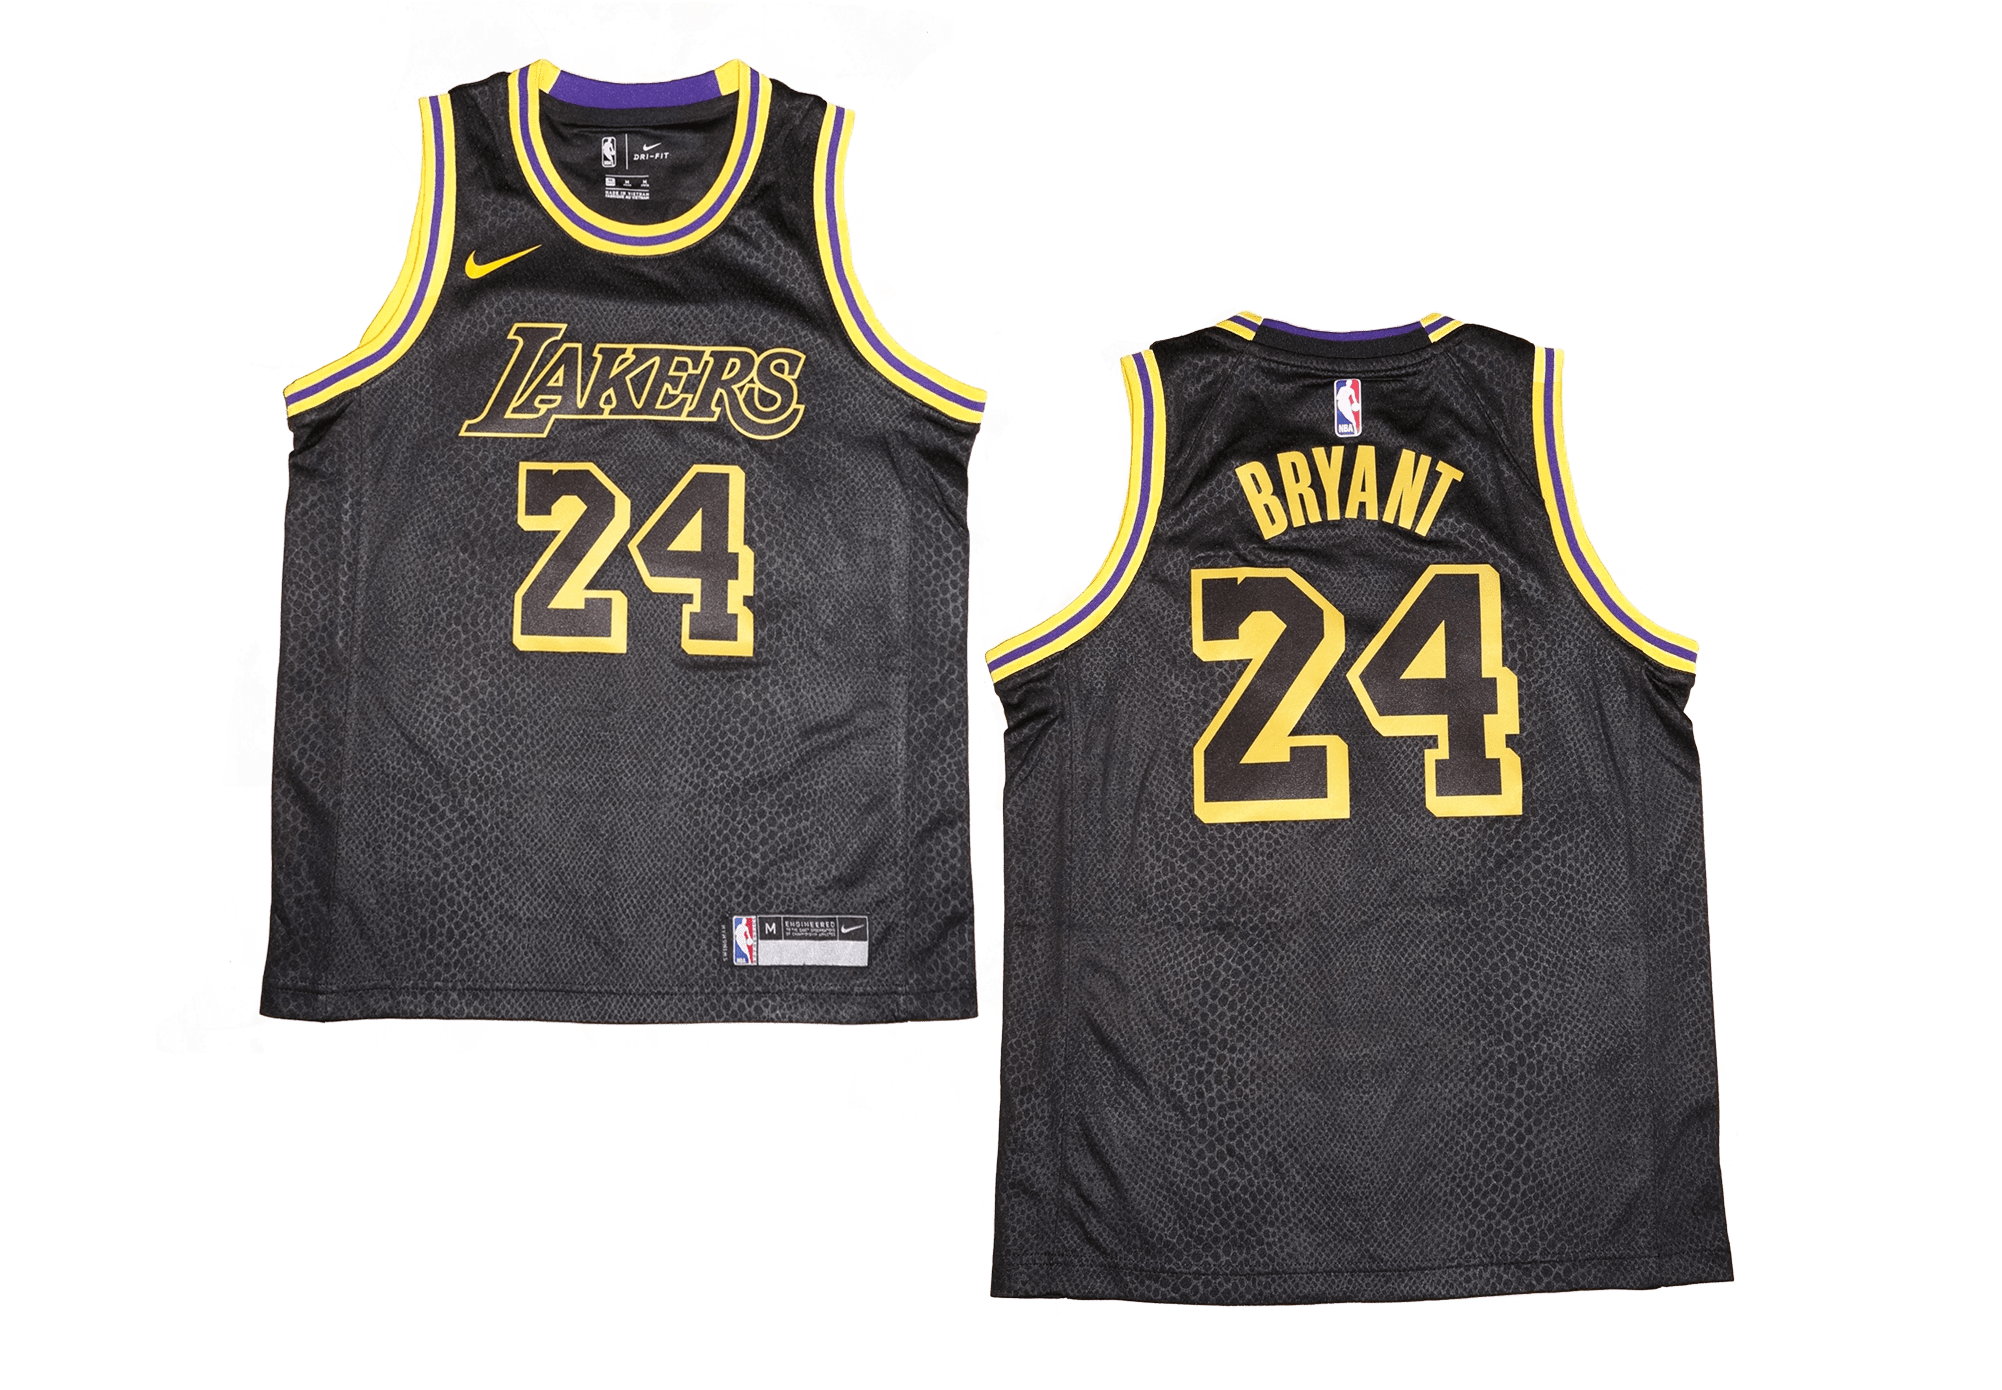 Youth Nike NBA Los Angeles Lakers  24 Kobe Bryant Black Swingman ... aacf8493d